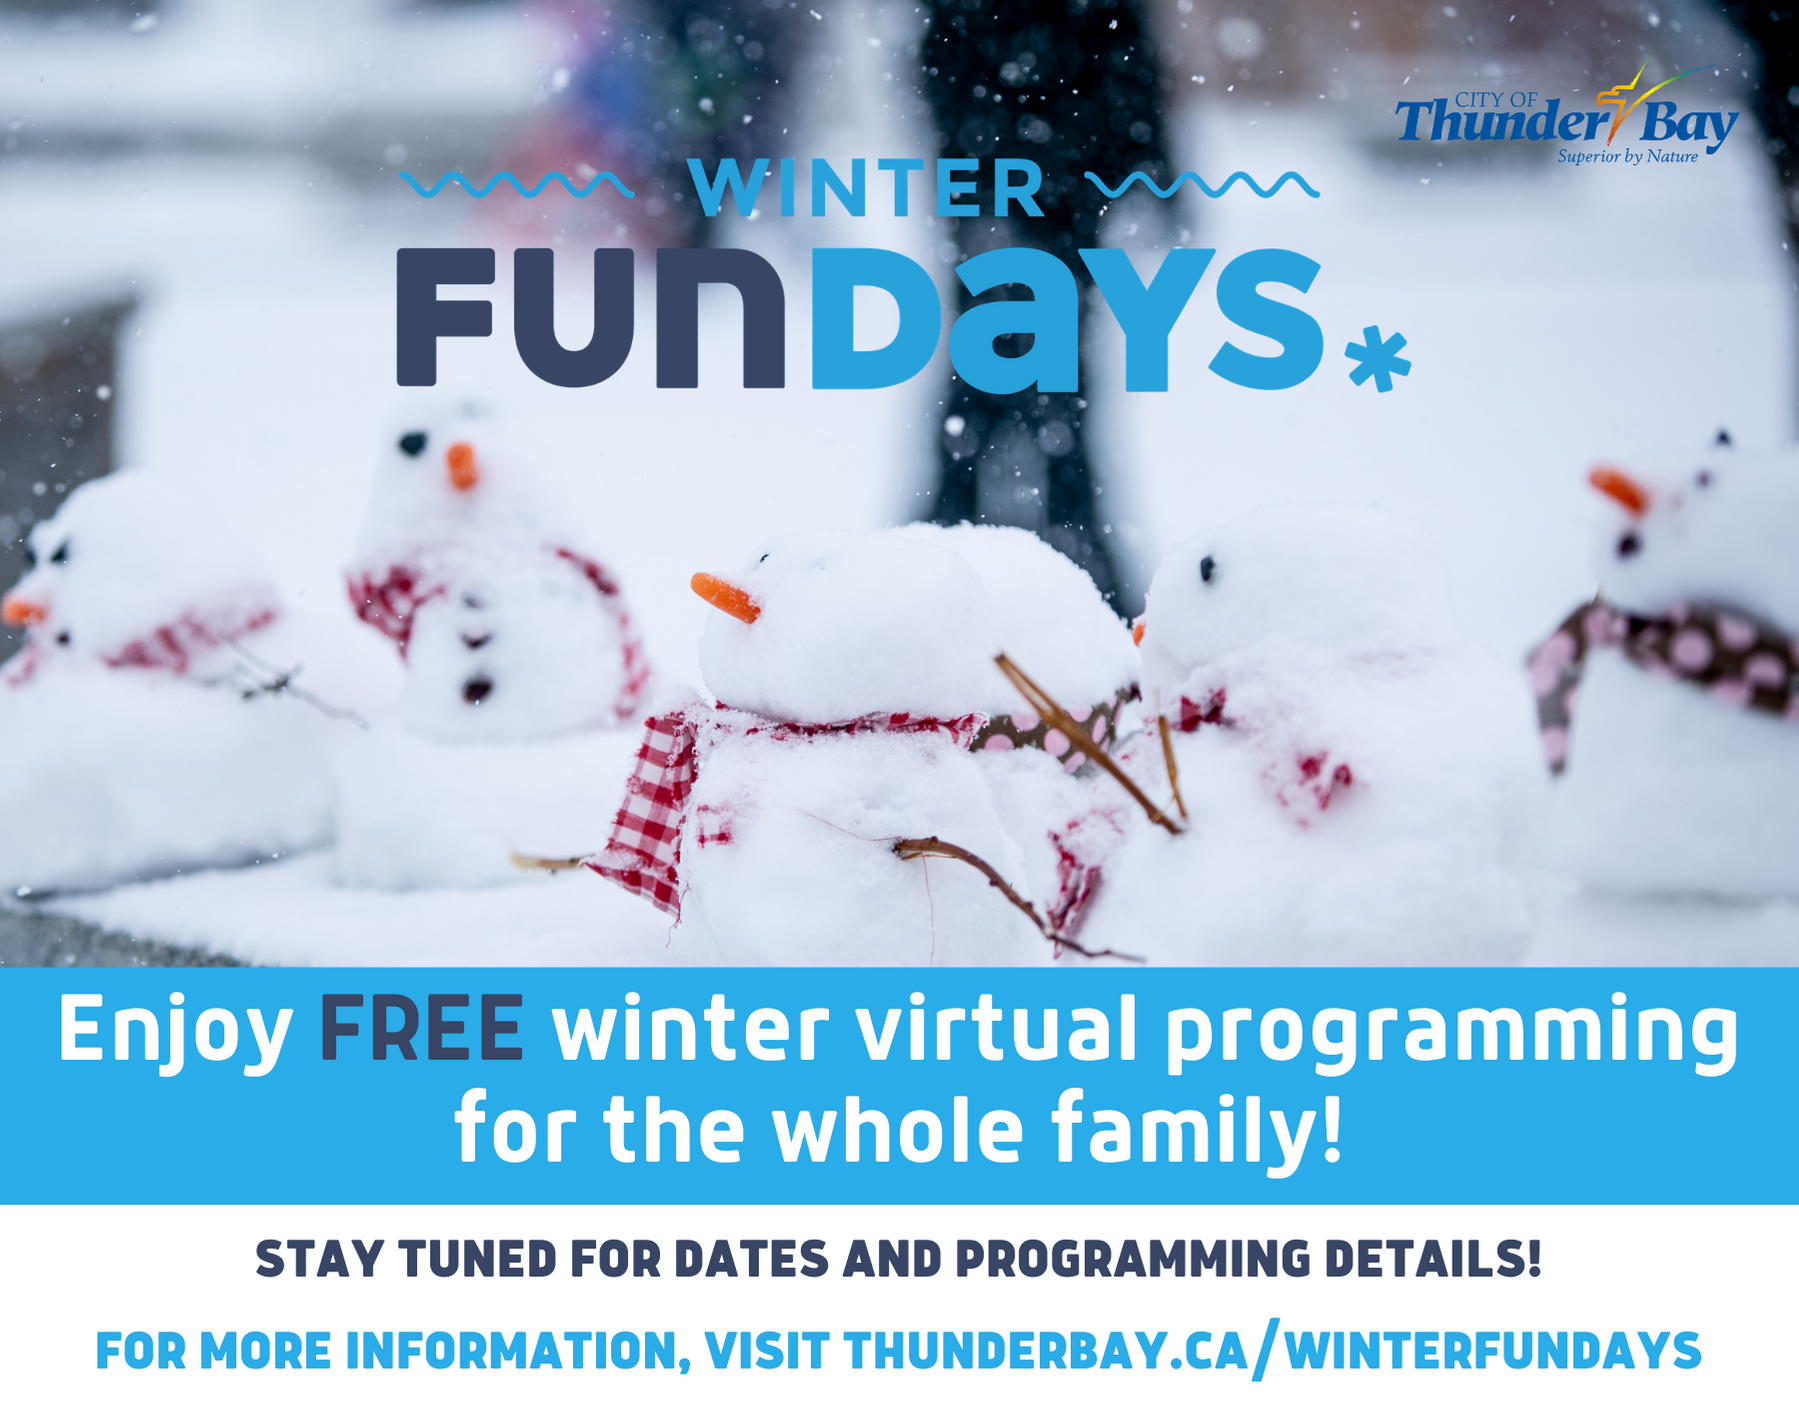 Winter FunDays Ad - stay tuned for more information